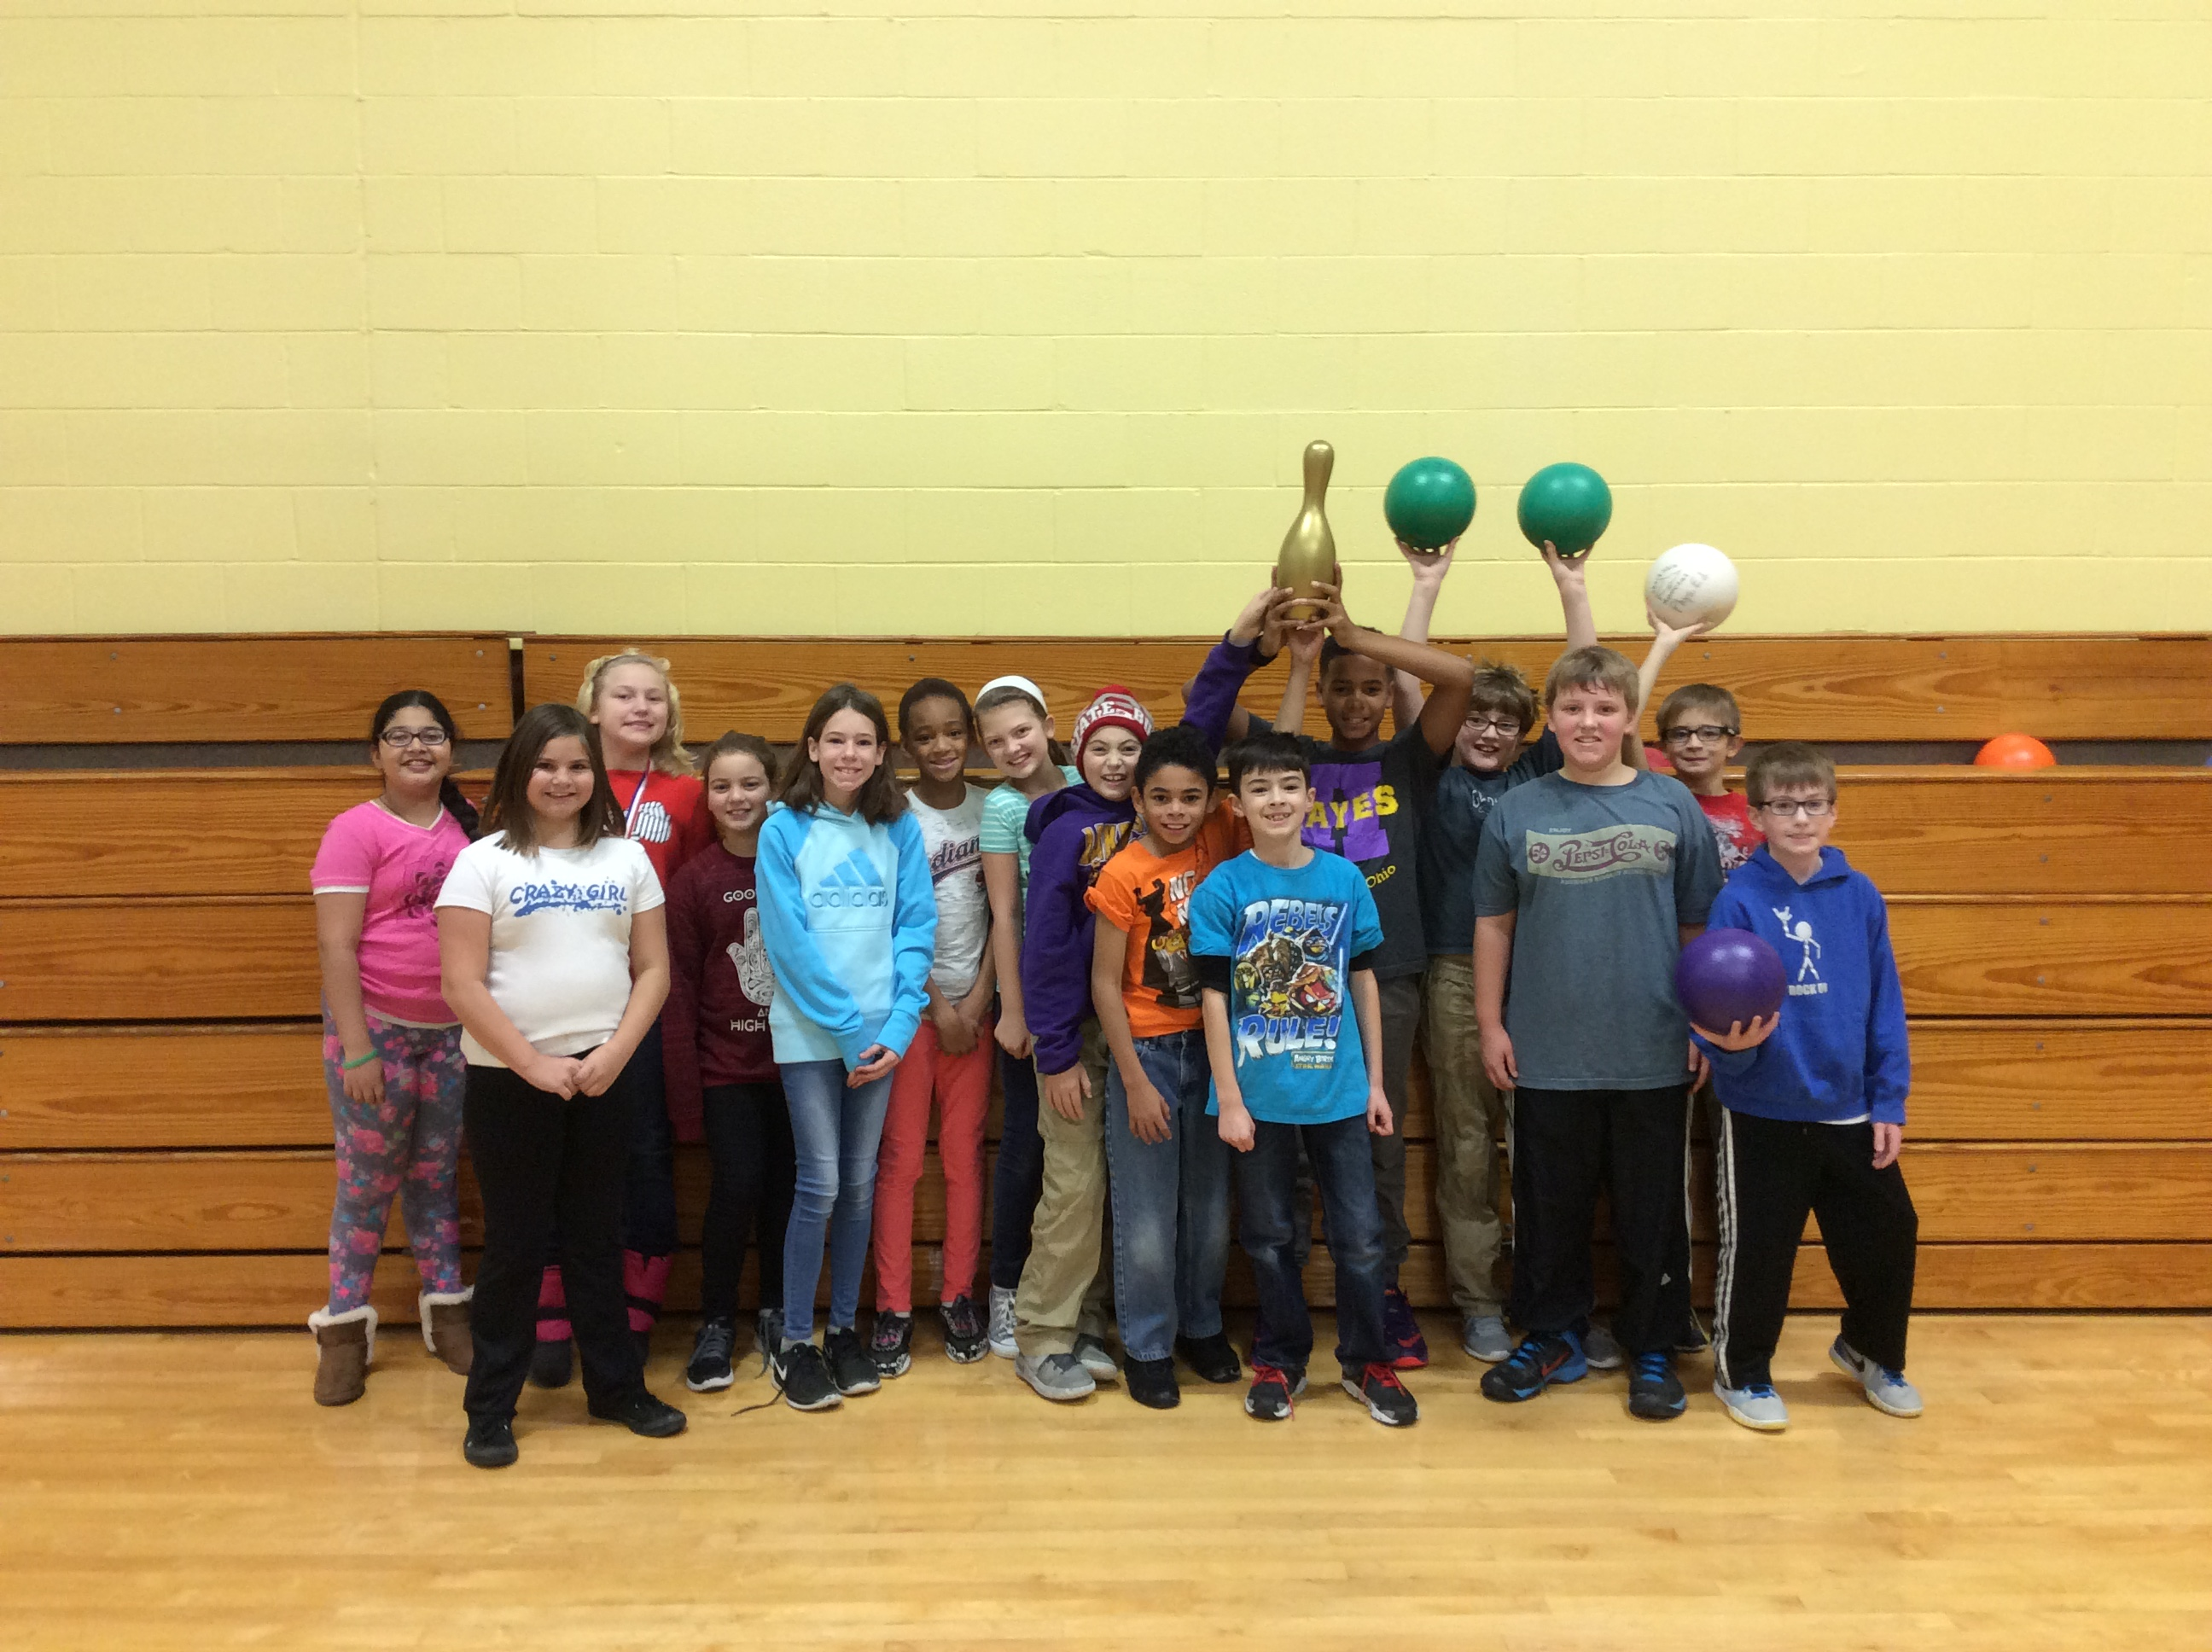 Congratulations 5th Grade Cardio Bowling Team!